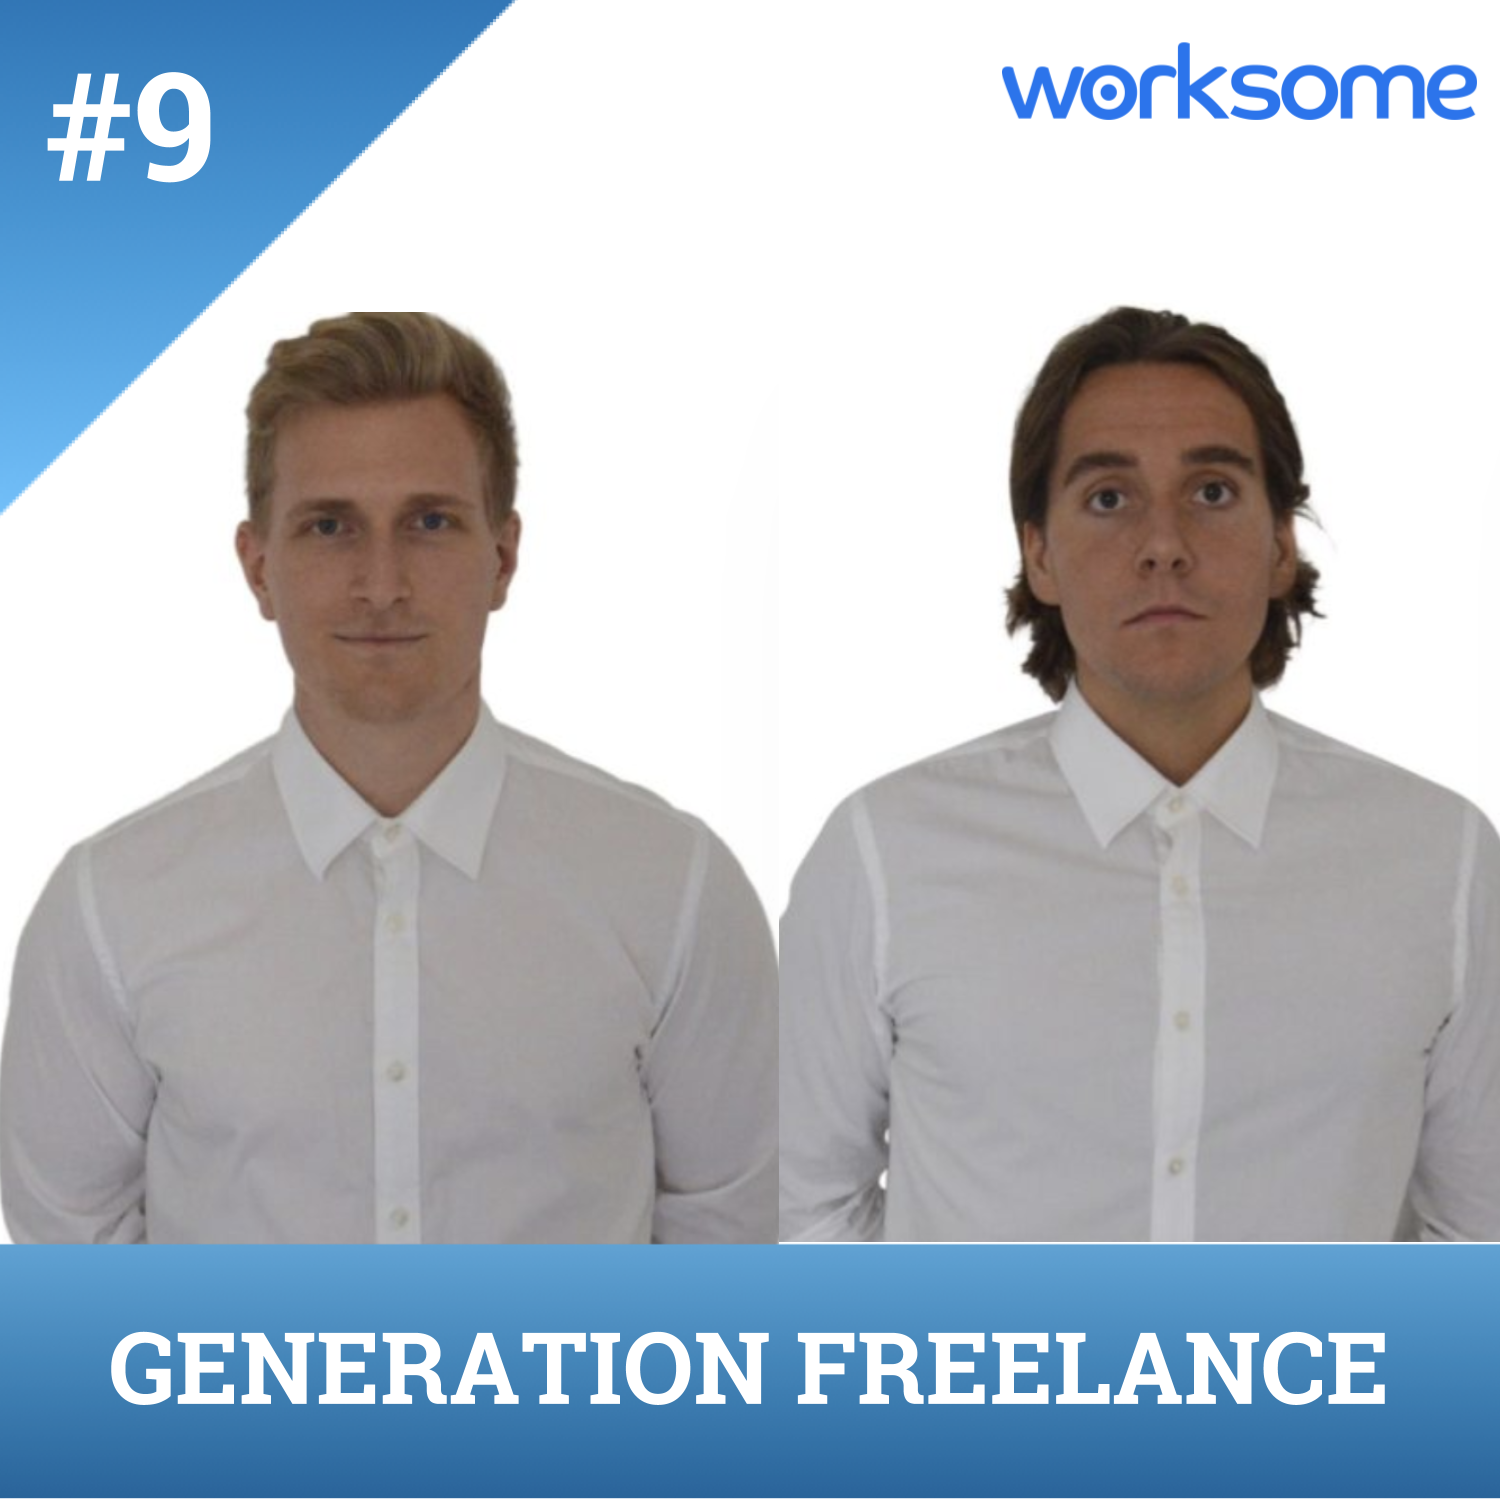 #9 - Sådan får du success som digital freelancer